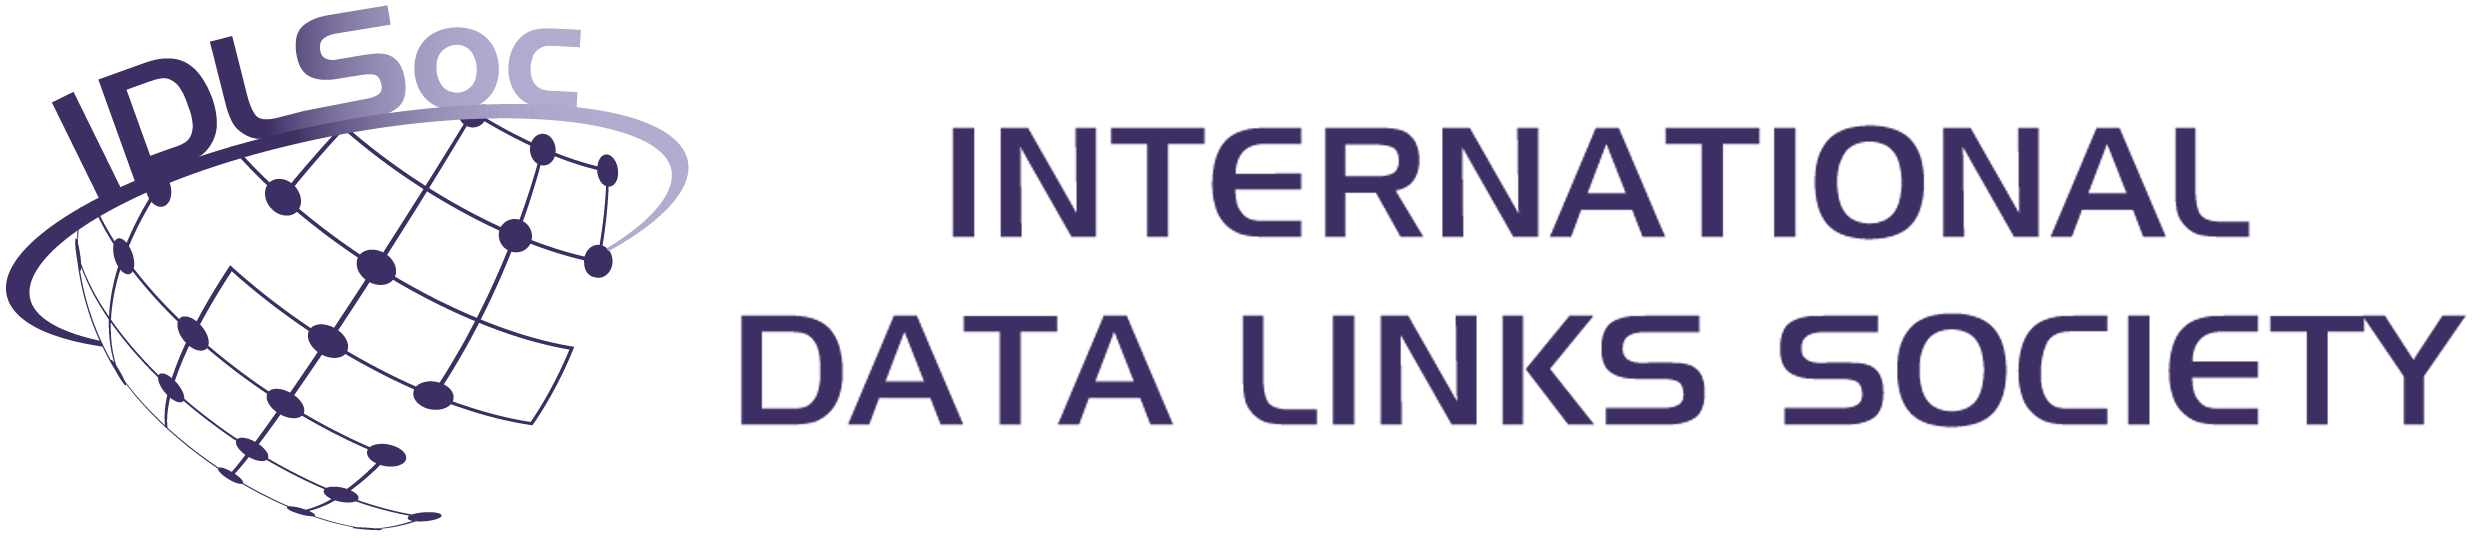 International Data Links Symposium 2018